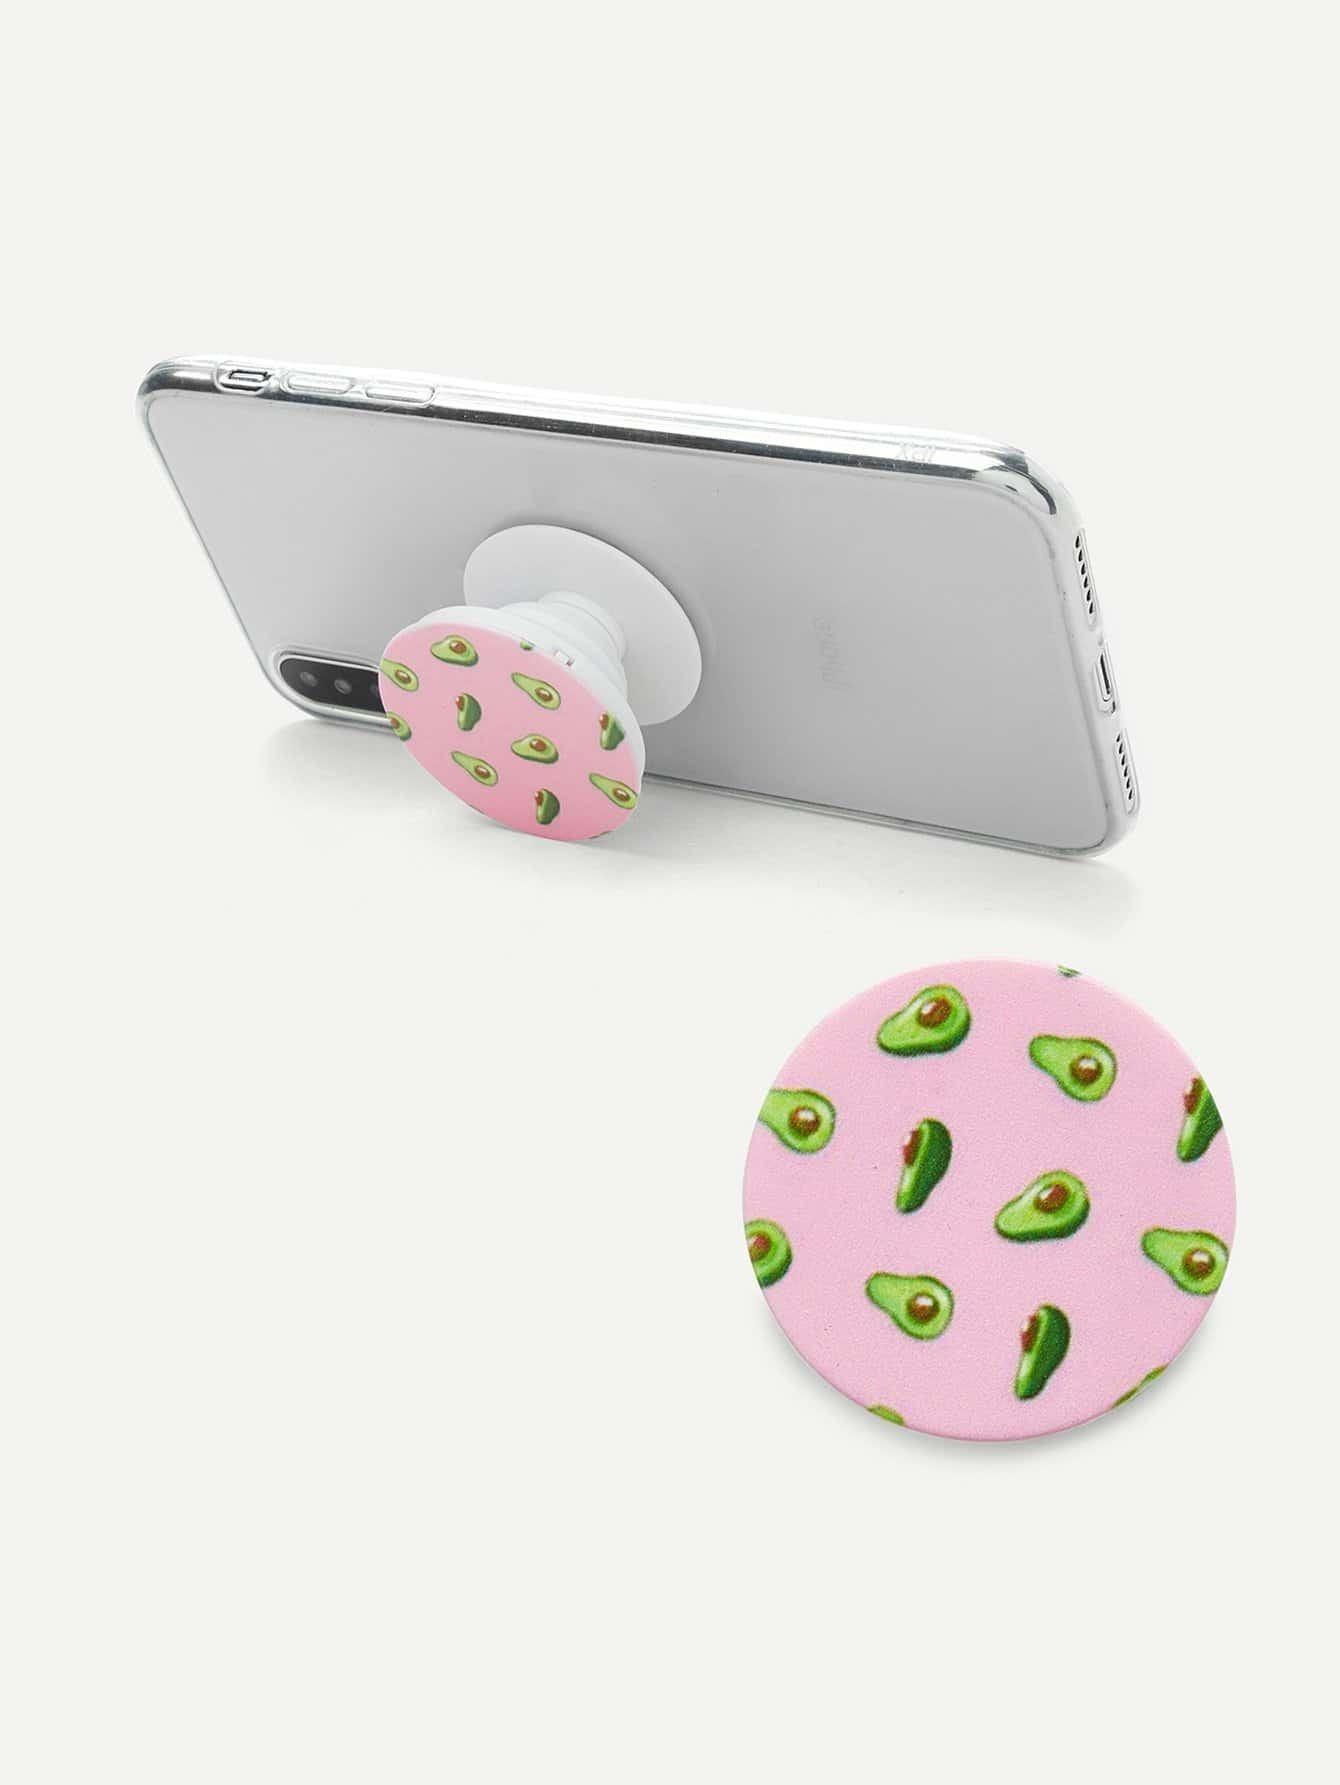 Avocado Pattern Gasbag Phone Holder avocado pattern gasbag phone holder